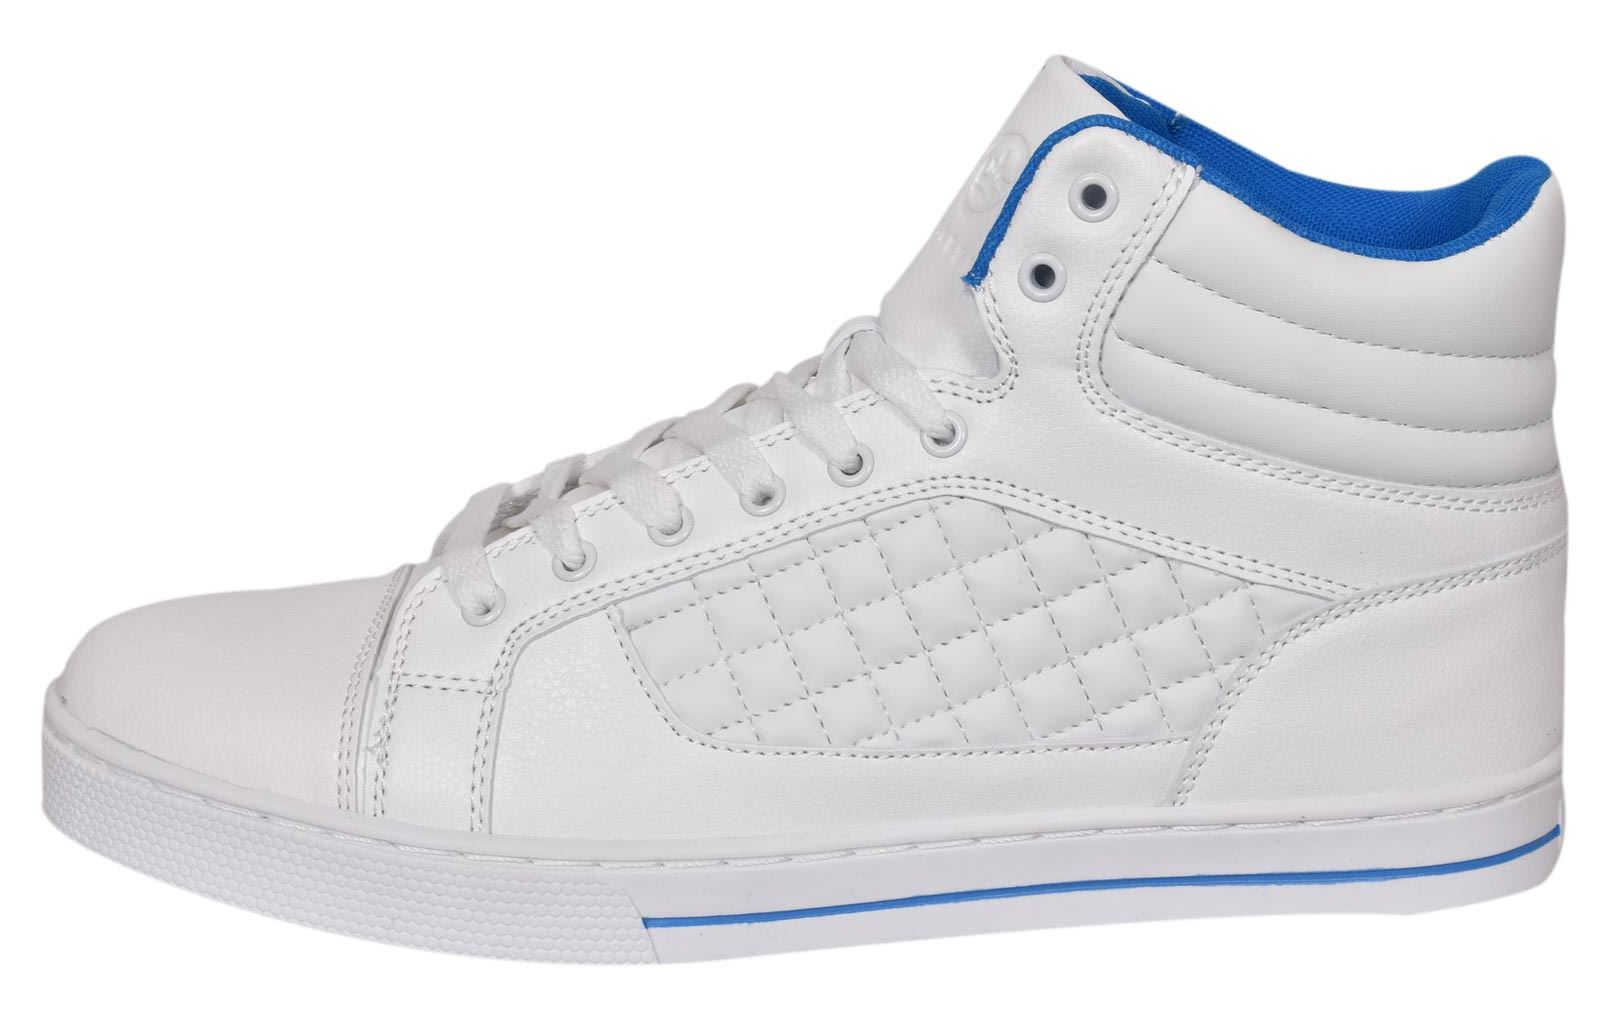 Mens-Trainers-Lace-up-Crosshatch-High-Tops-Ankle-Padded-Shoes-New-UK-Sizes-7-12 thumbnail 20